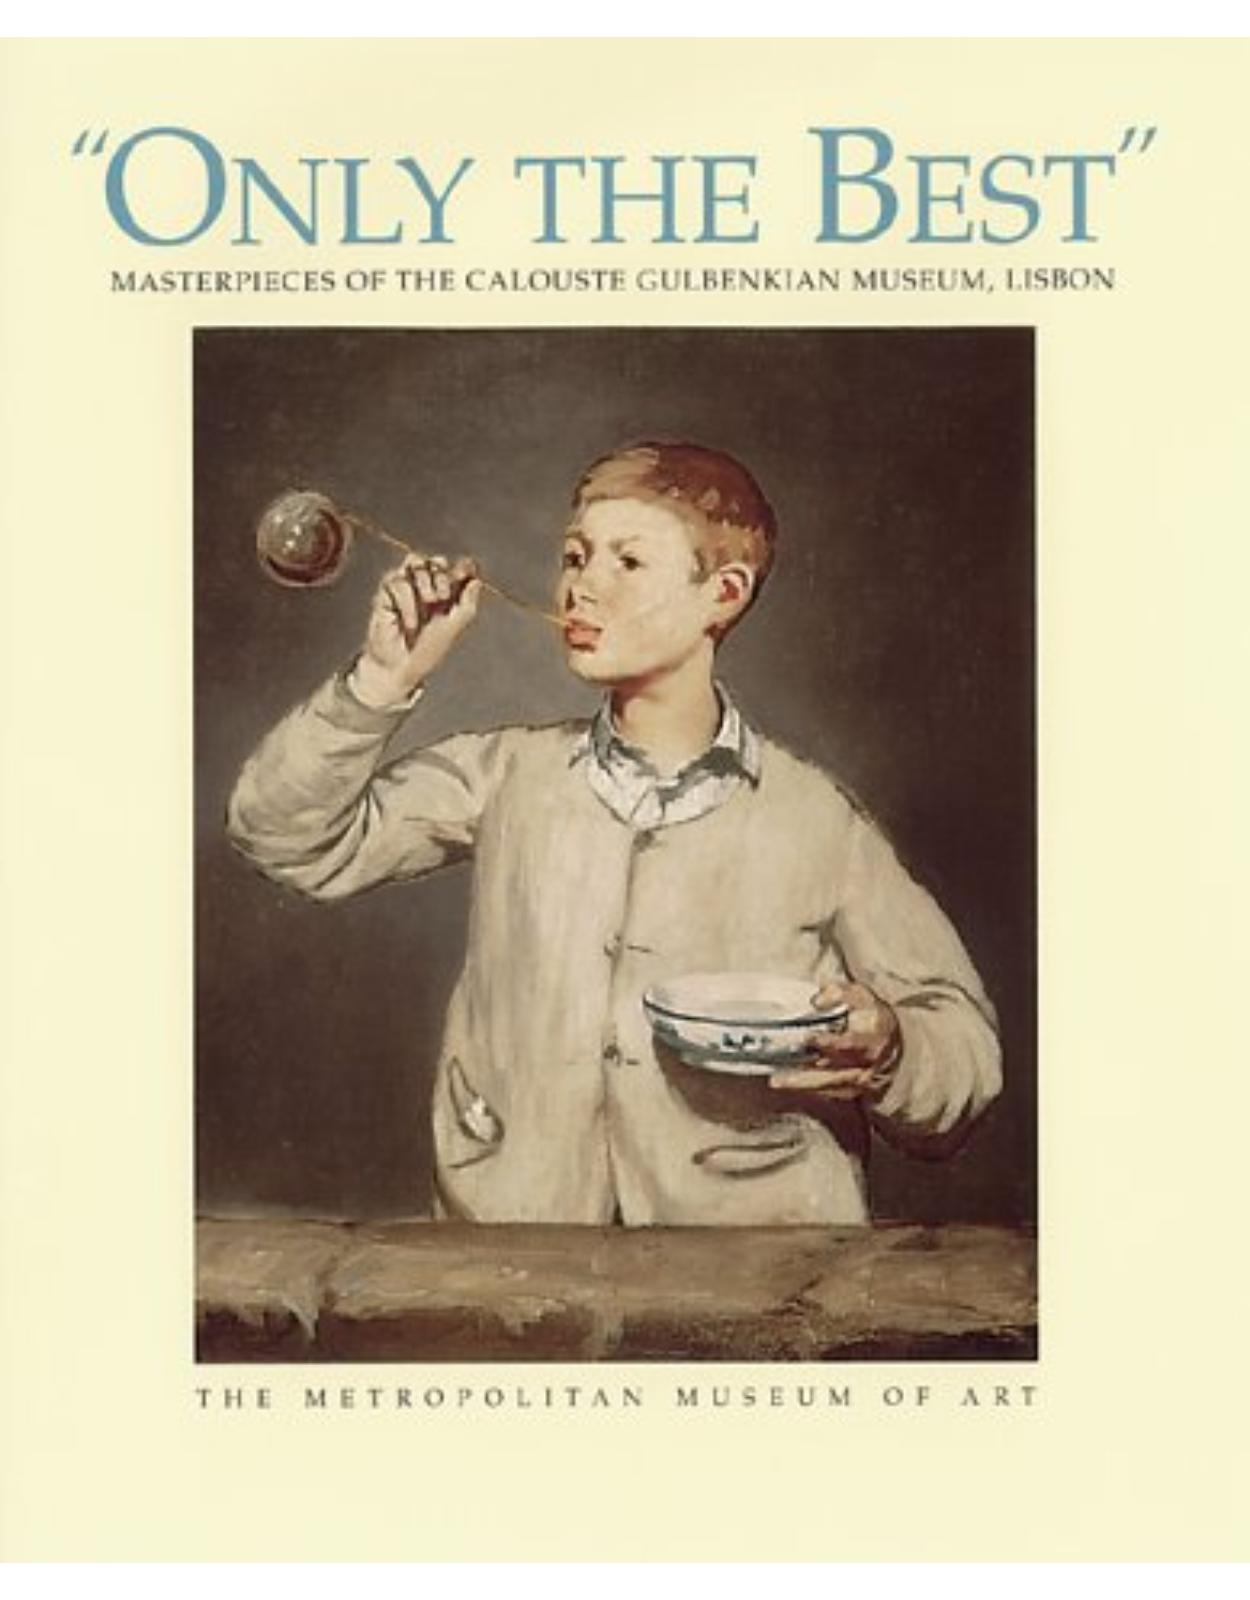 Only the Best: Masterpieces of the Calouste Gulbenkian Museum, Lisbon